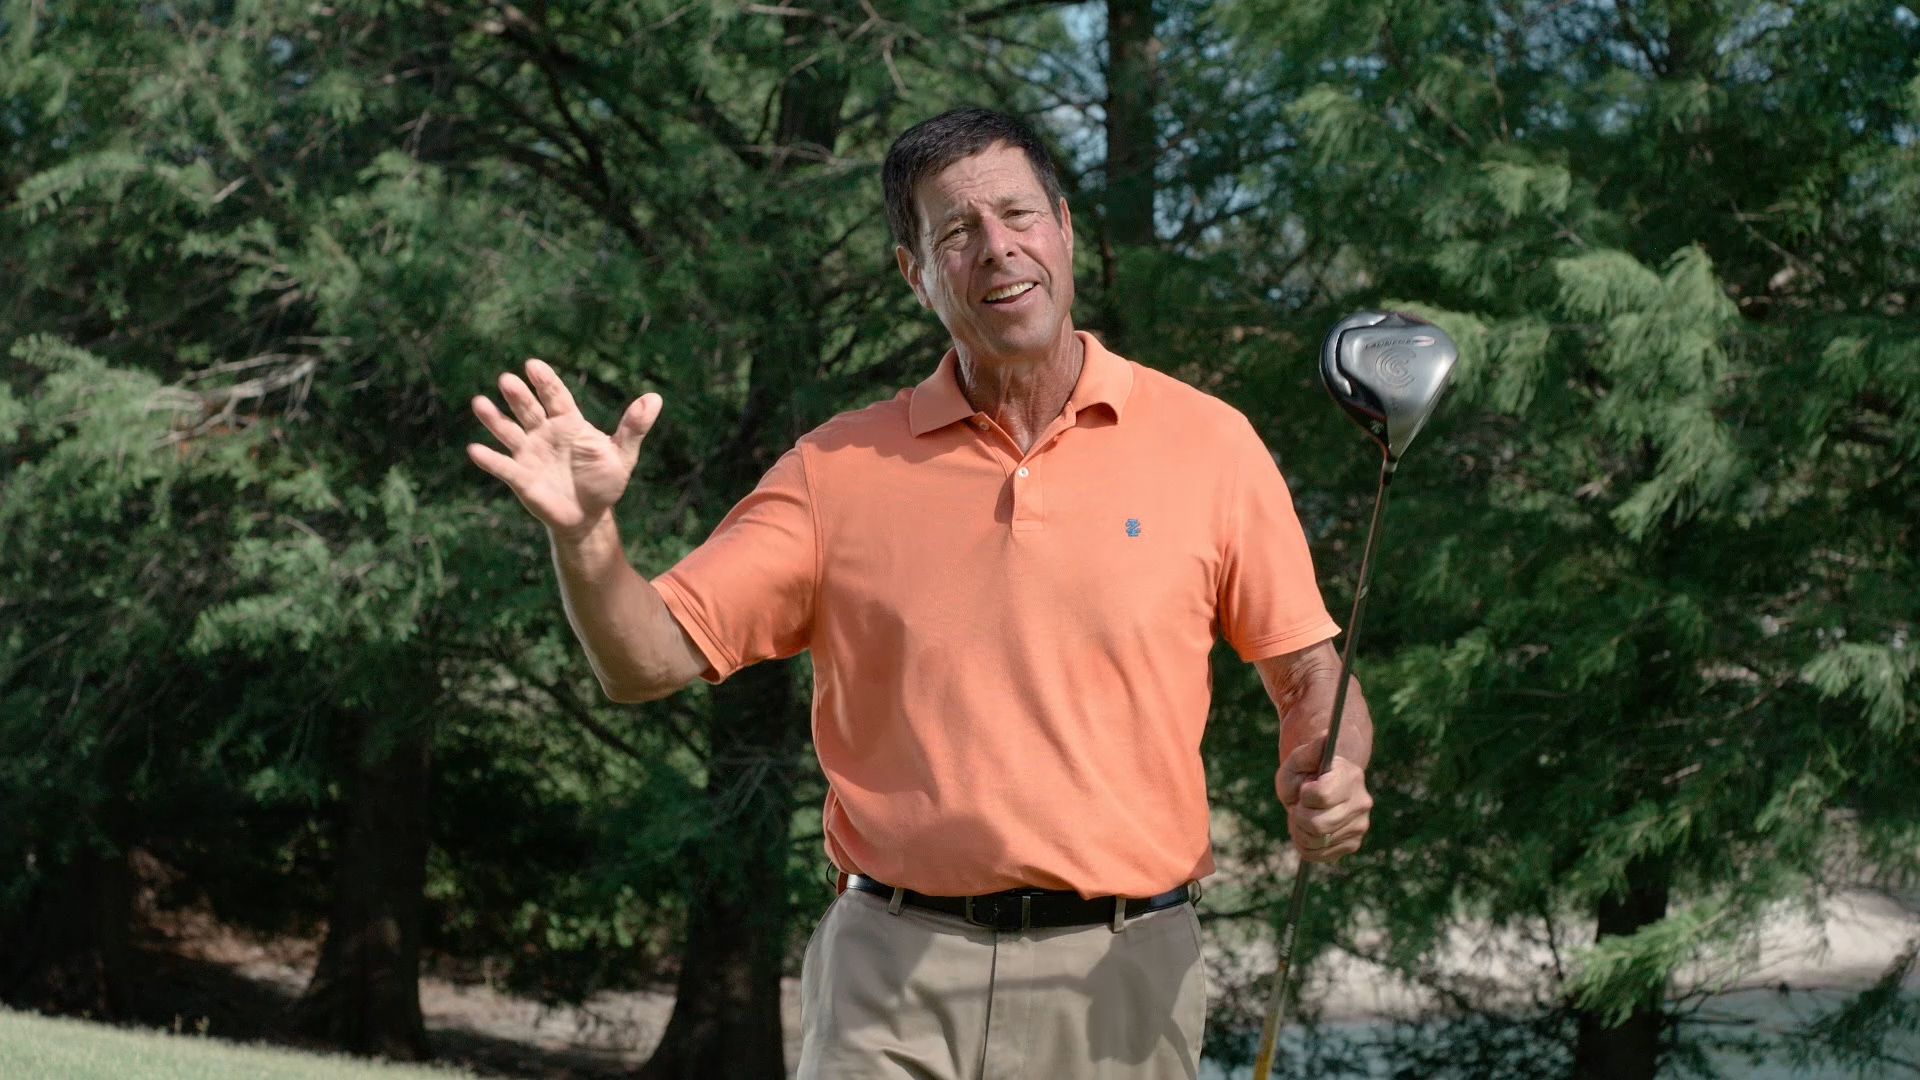 Golf's Greatest - Instructional Video